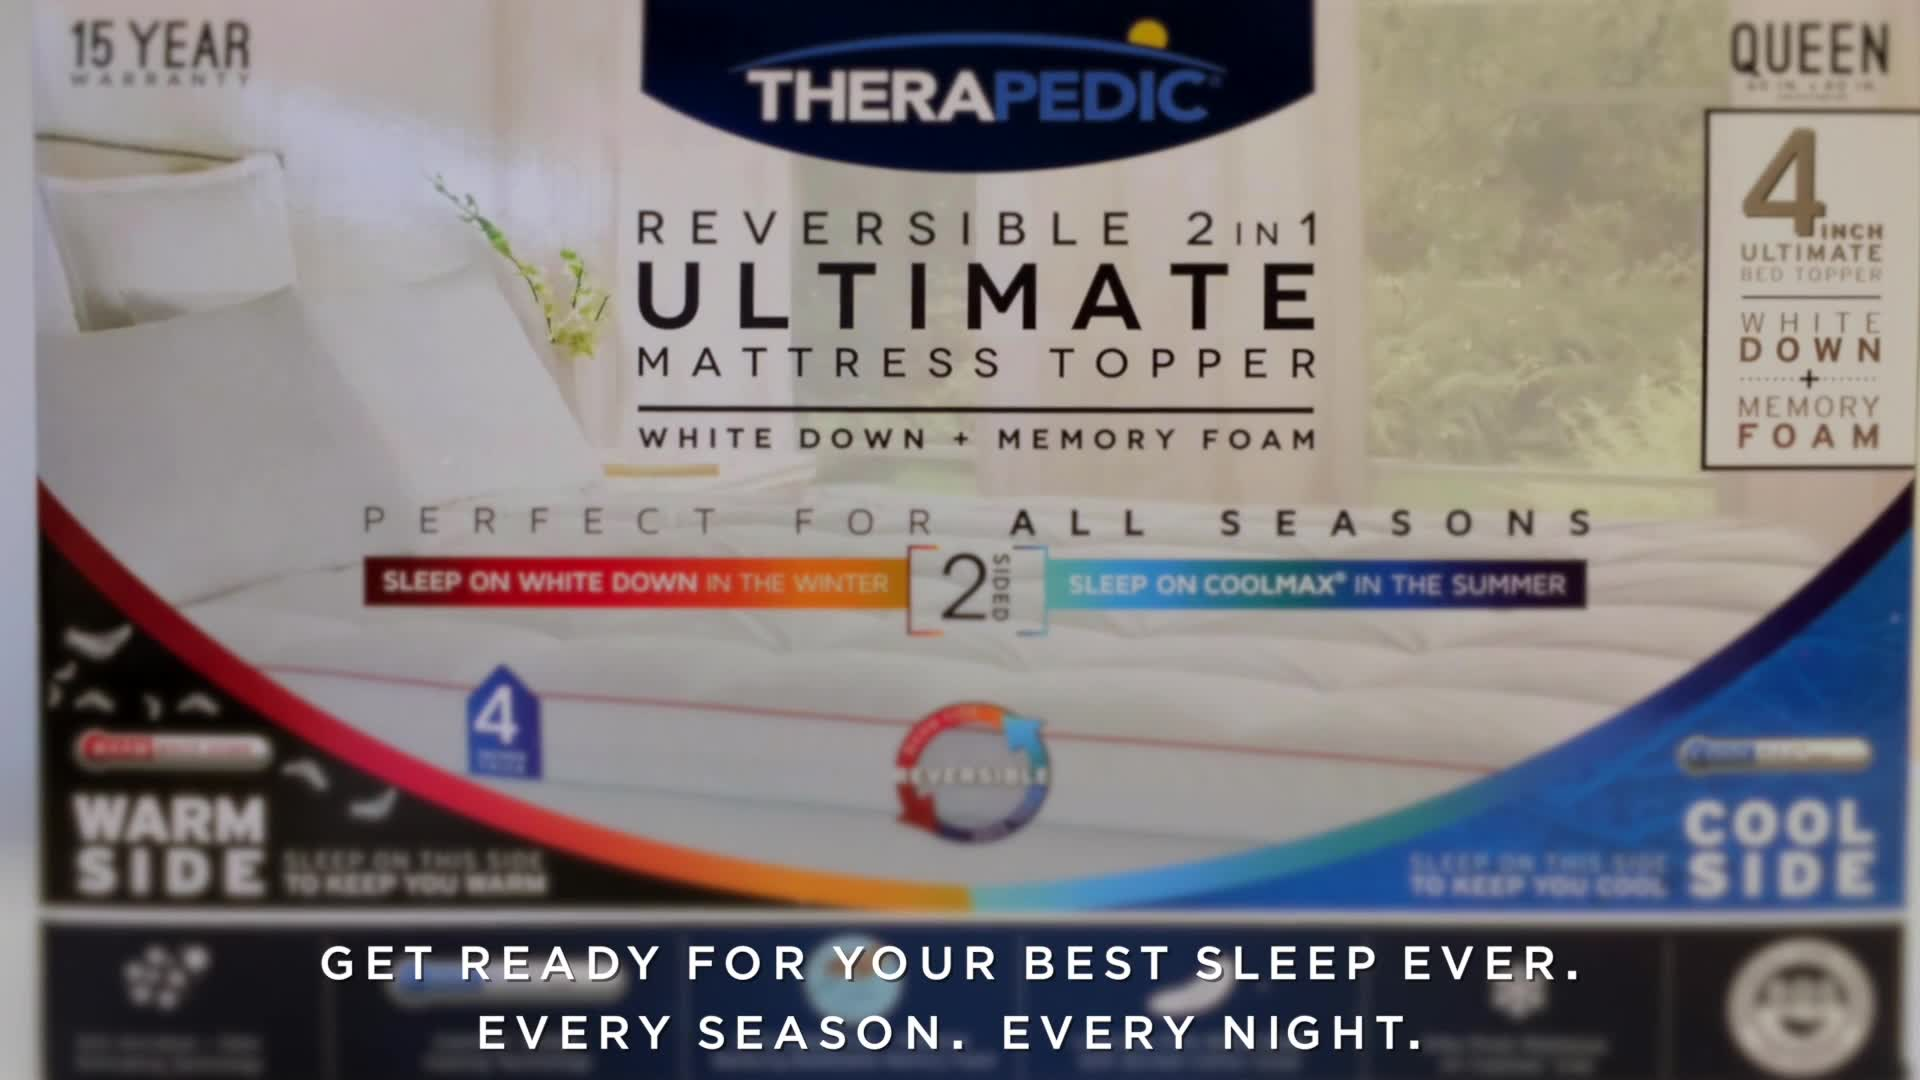 Therapedic 4 Inch Dual Season Mattress Topper in White Bed Bath